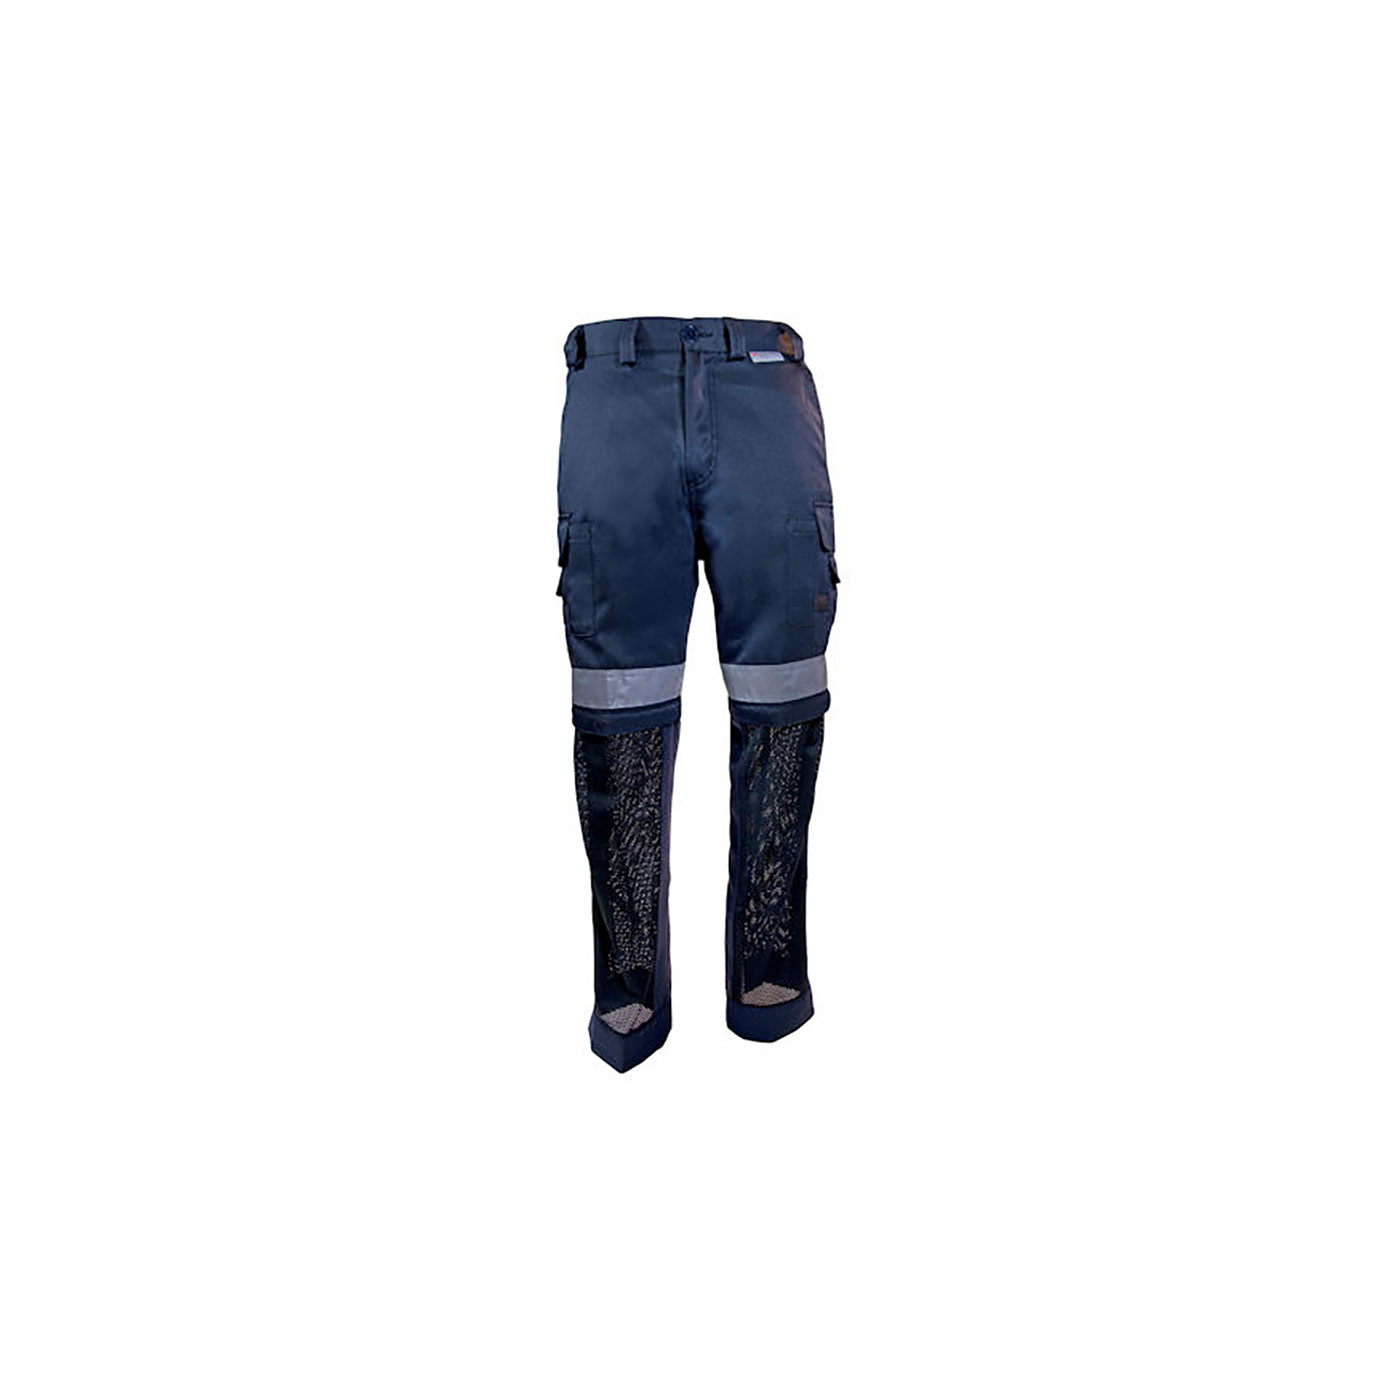 Coolworks Ventilated Work Pants